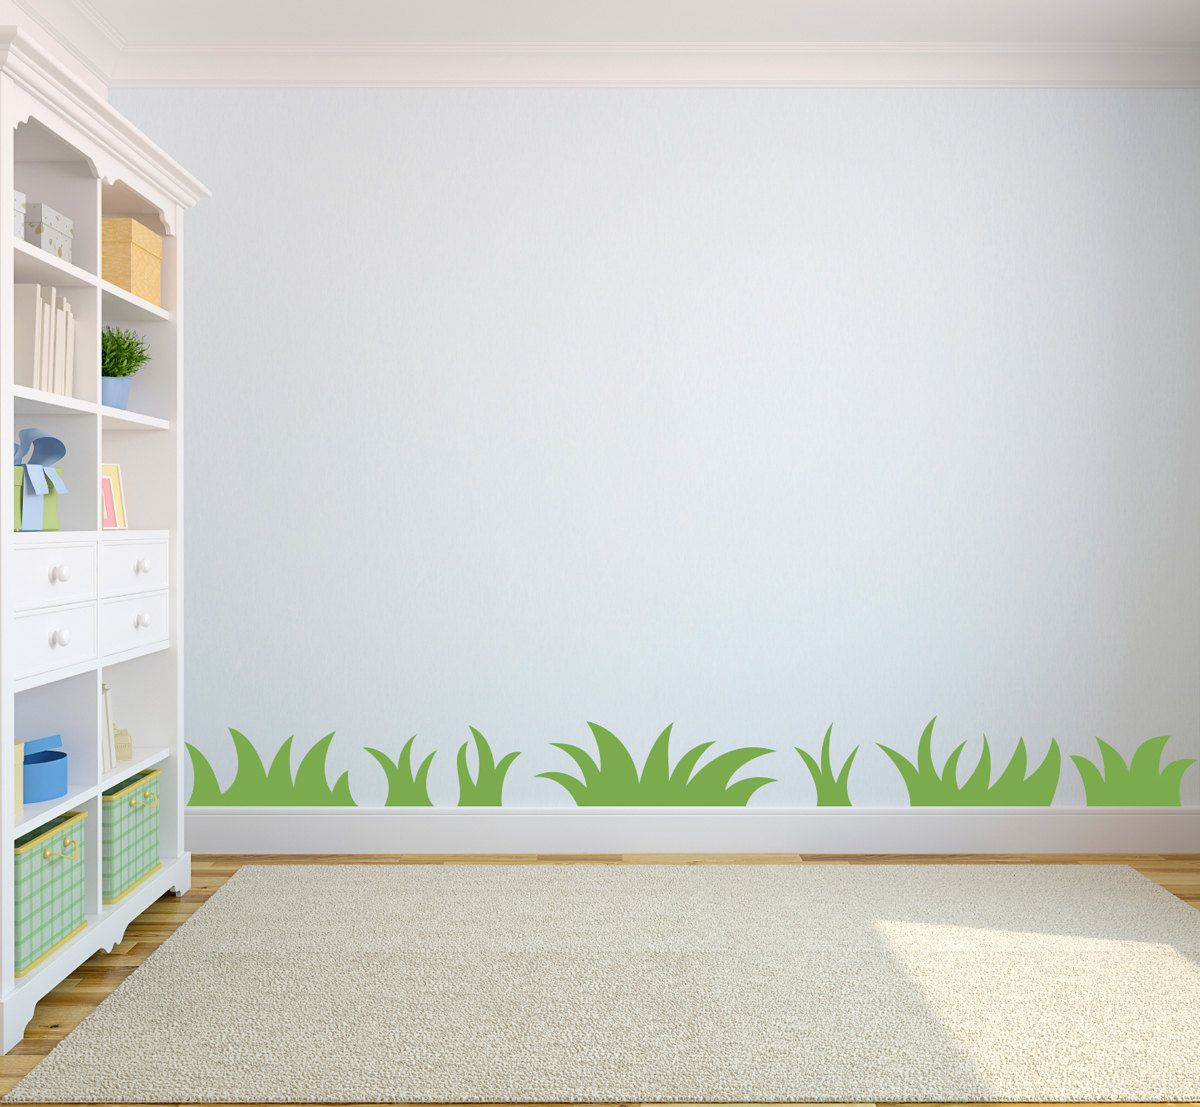 Grass wall decal nature wall art for kids bedroom set for Bedroom wall art decor